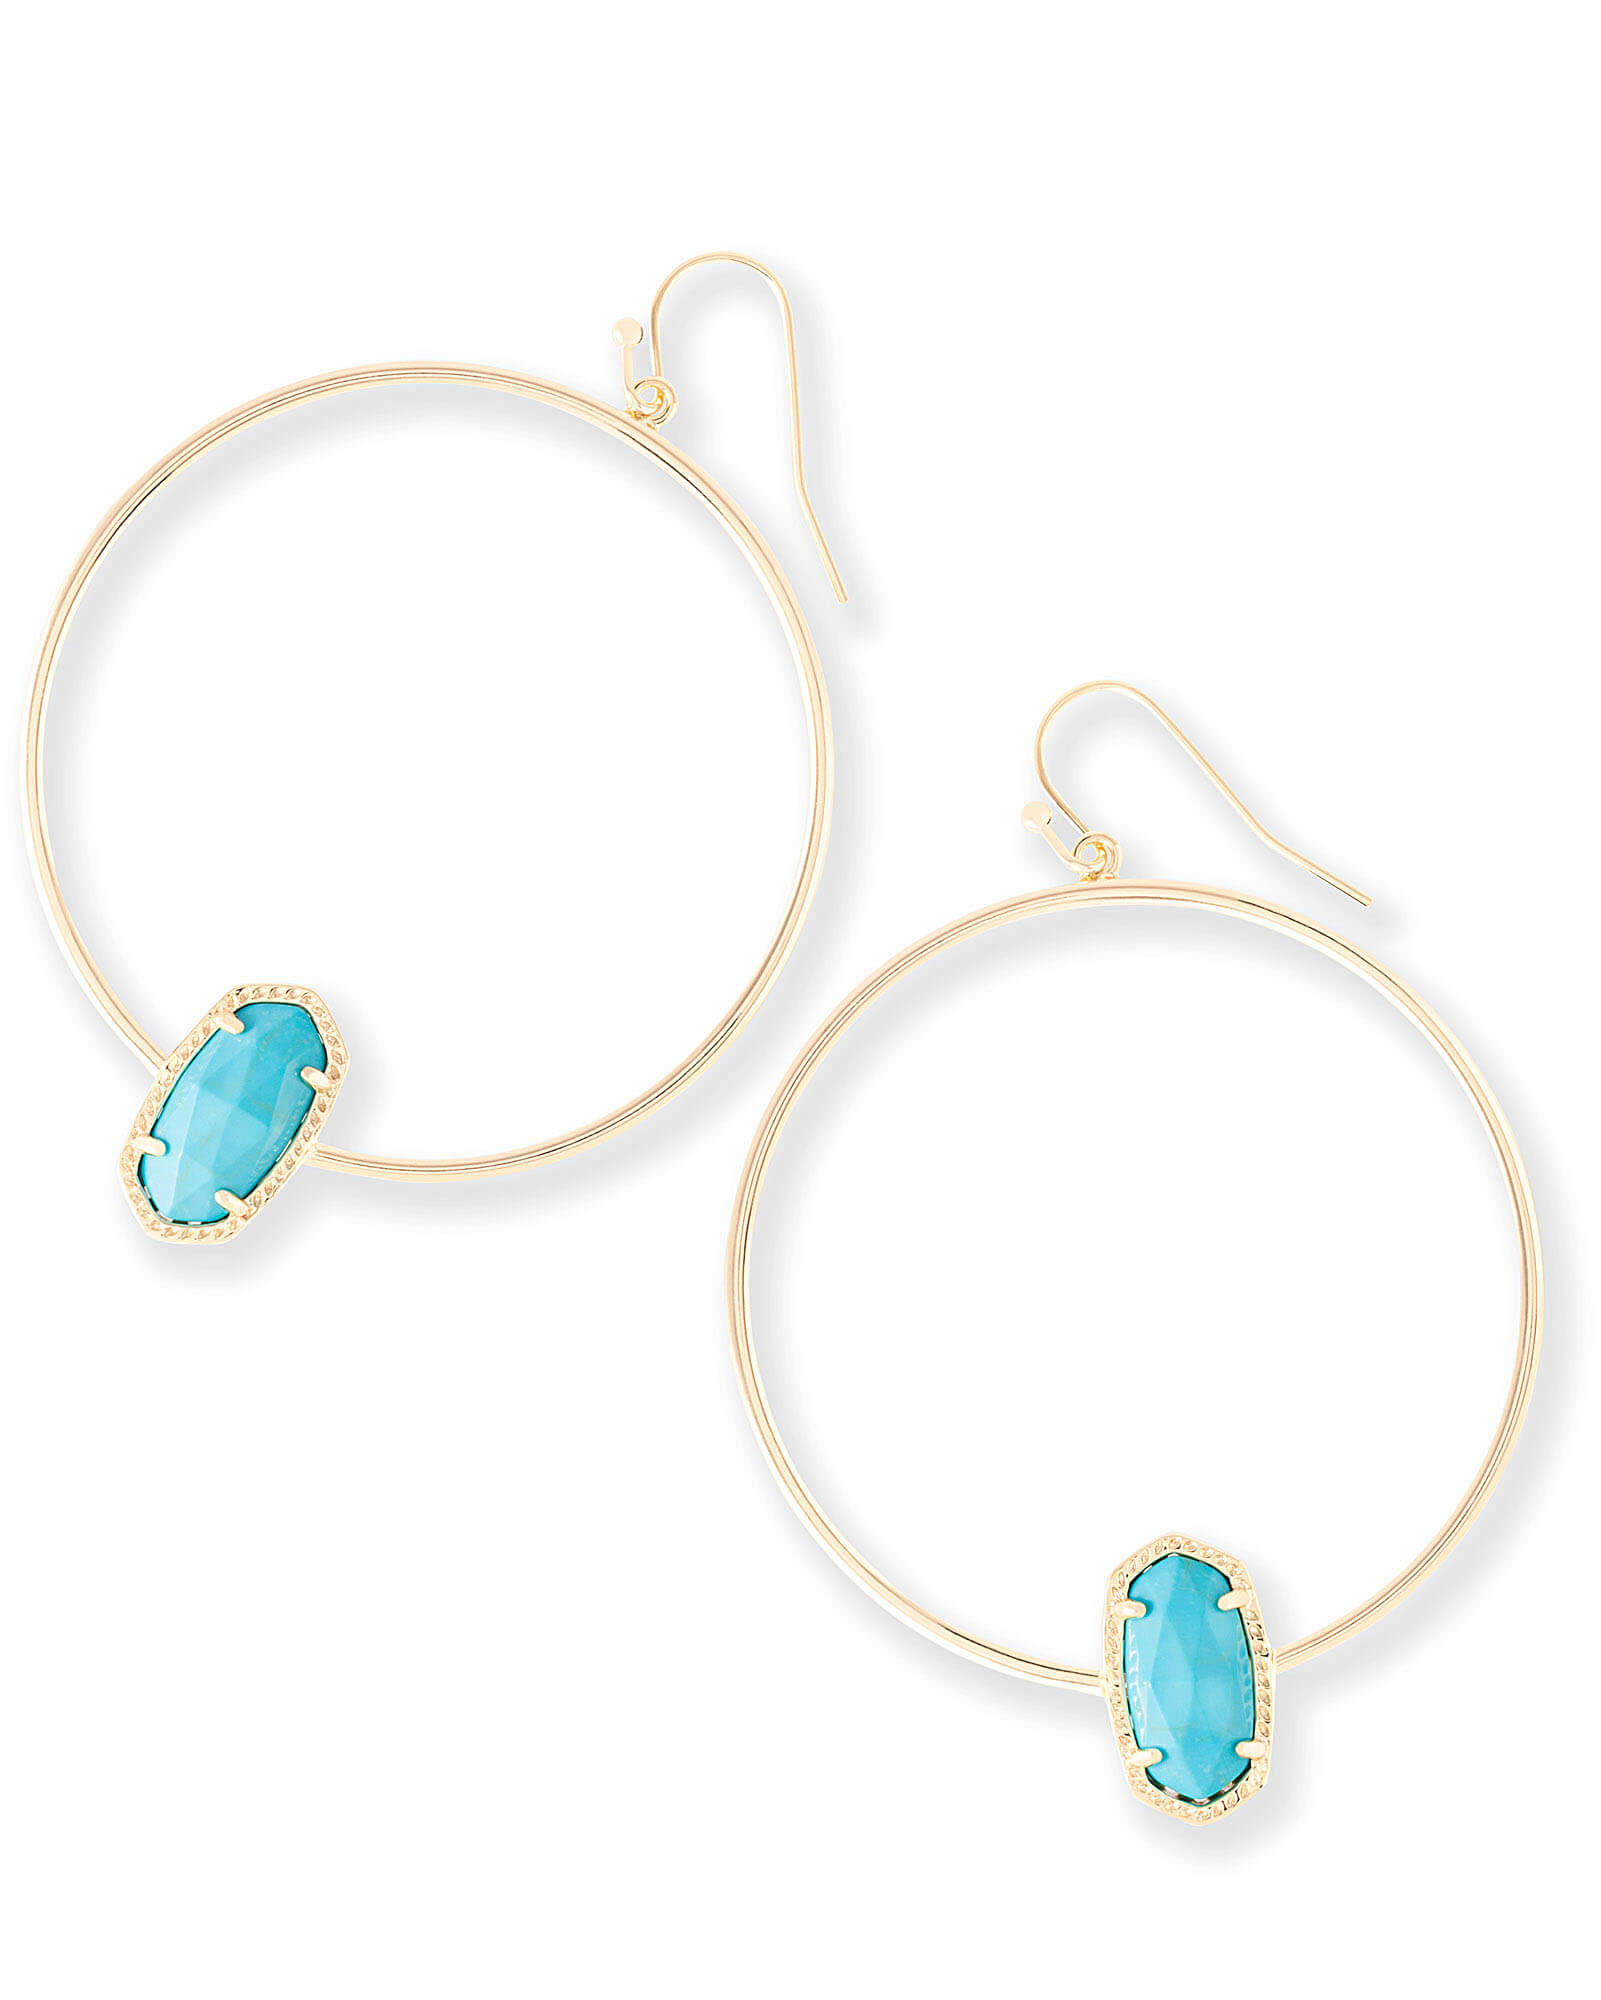 Elora Hoop Earrings in Turquoise